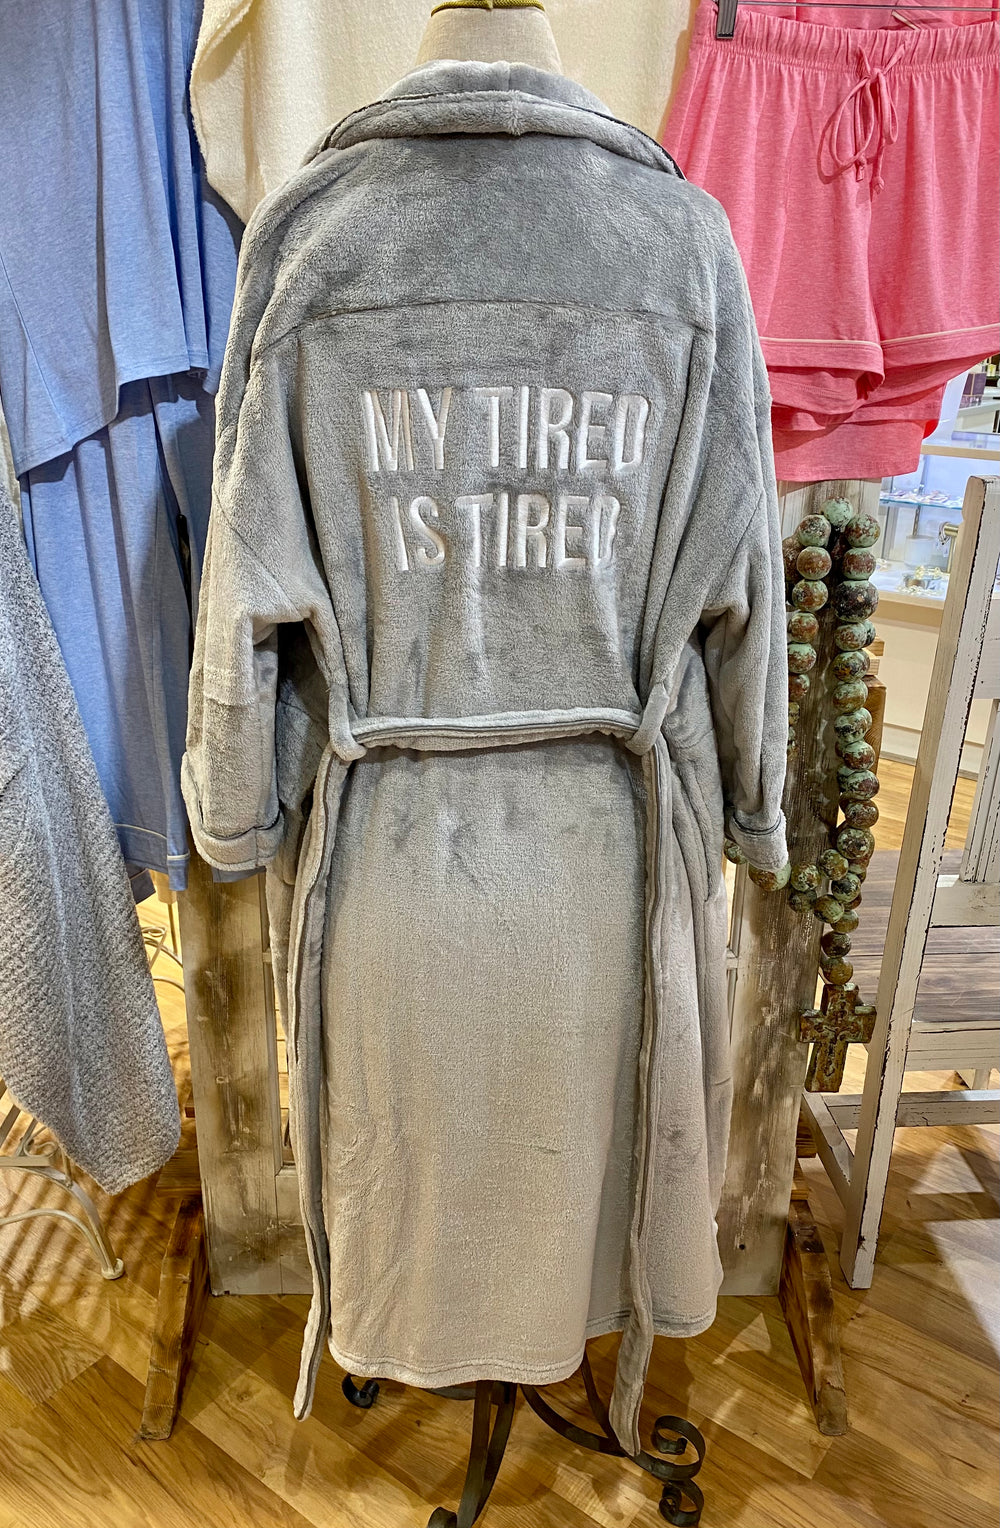 My Tired is Tired Fuzzy Robe